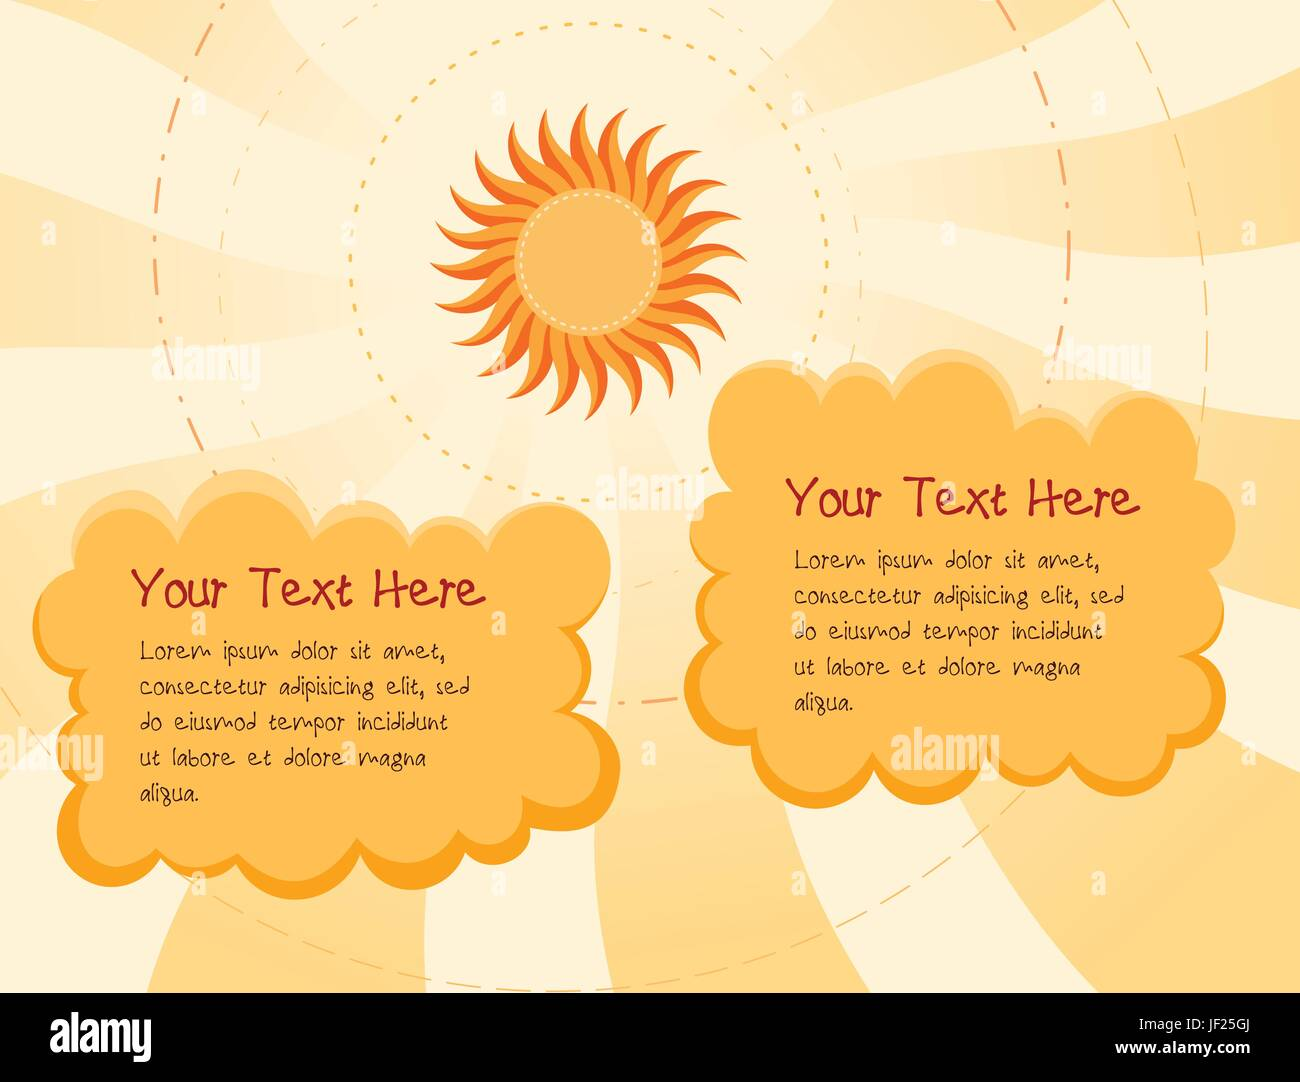 cloud, summer, summerly, day, during the day, delighted, unambitious, - Stock Vector